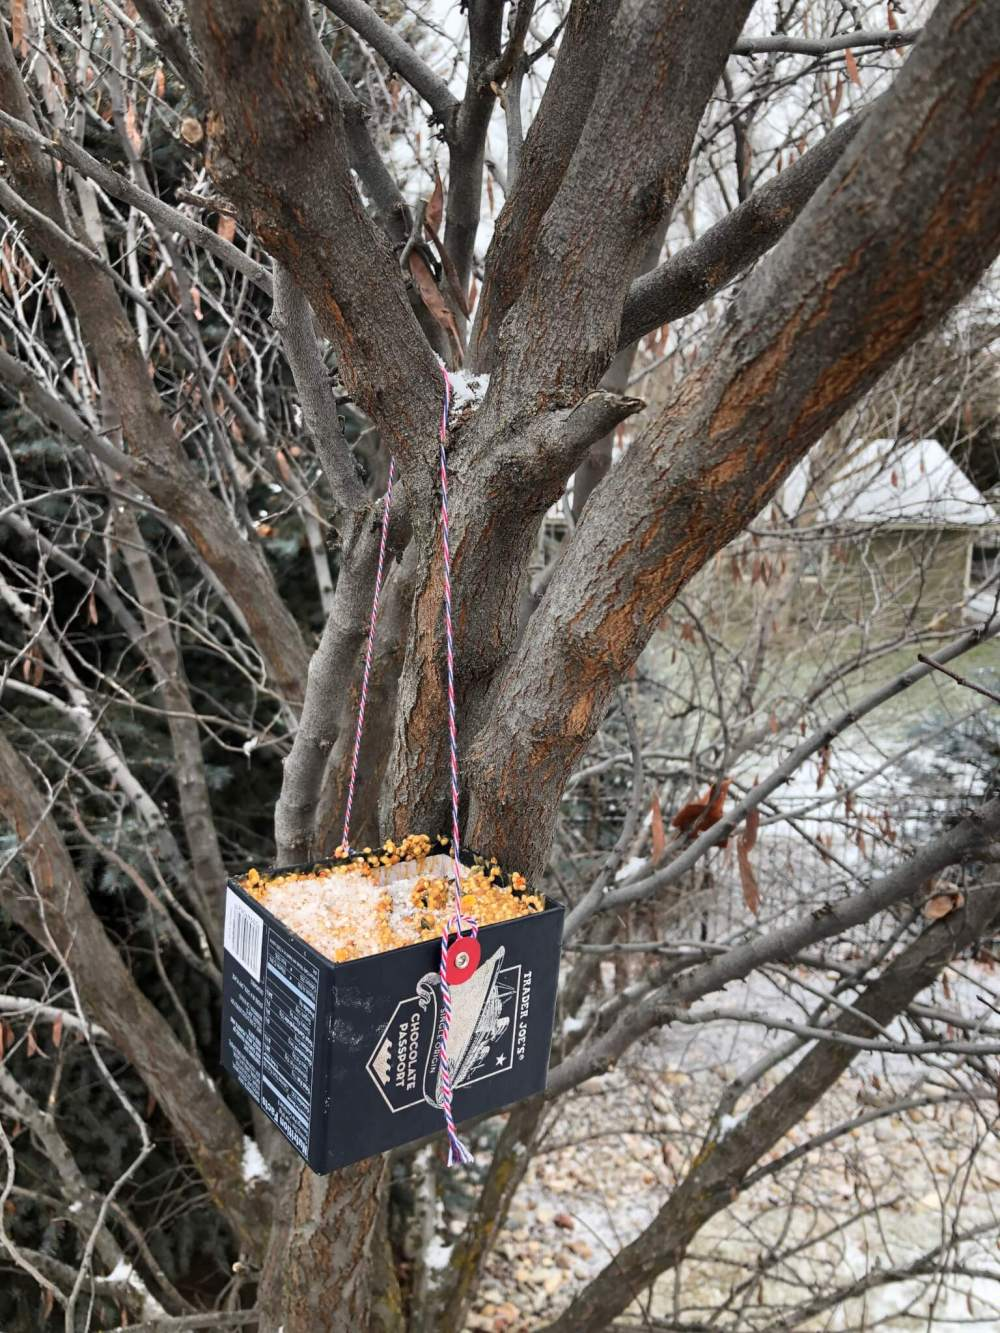 homemade bird feeder made from a recycled box hanging from a tree